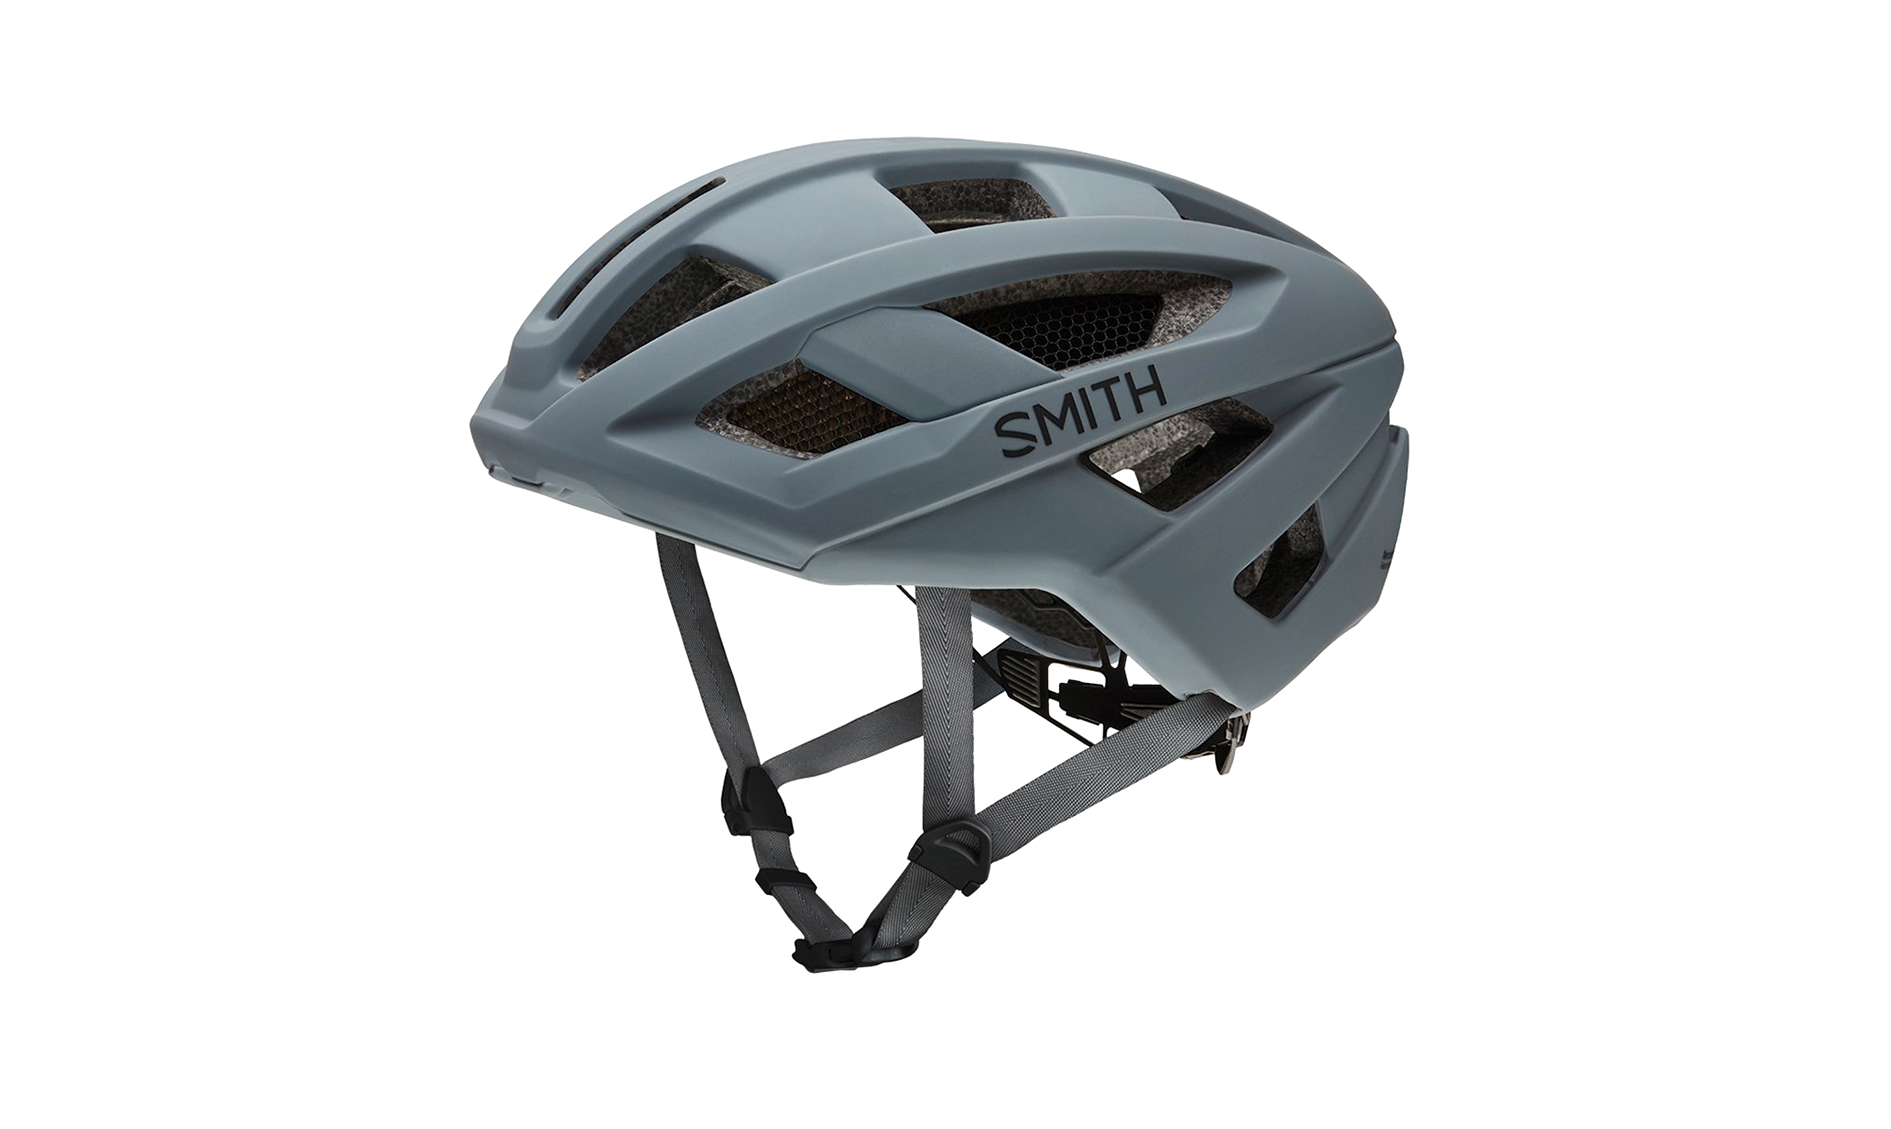 Smith-gray-helmet